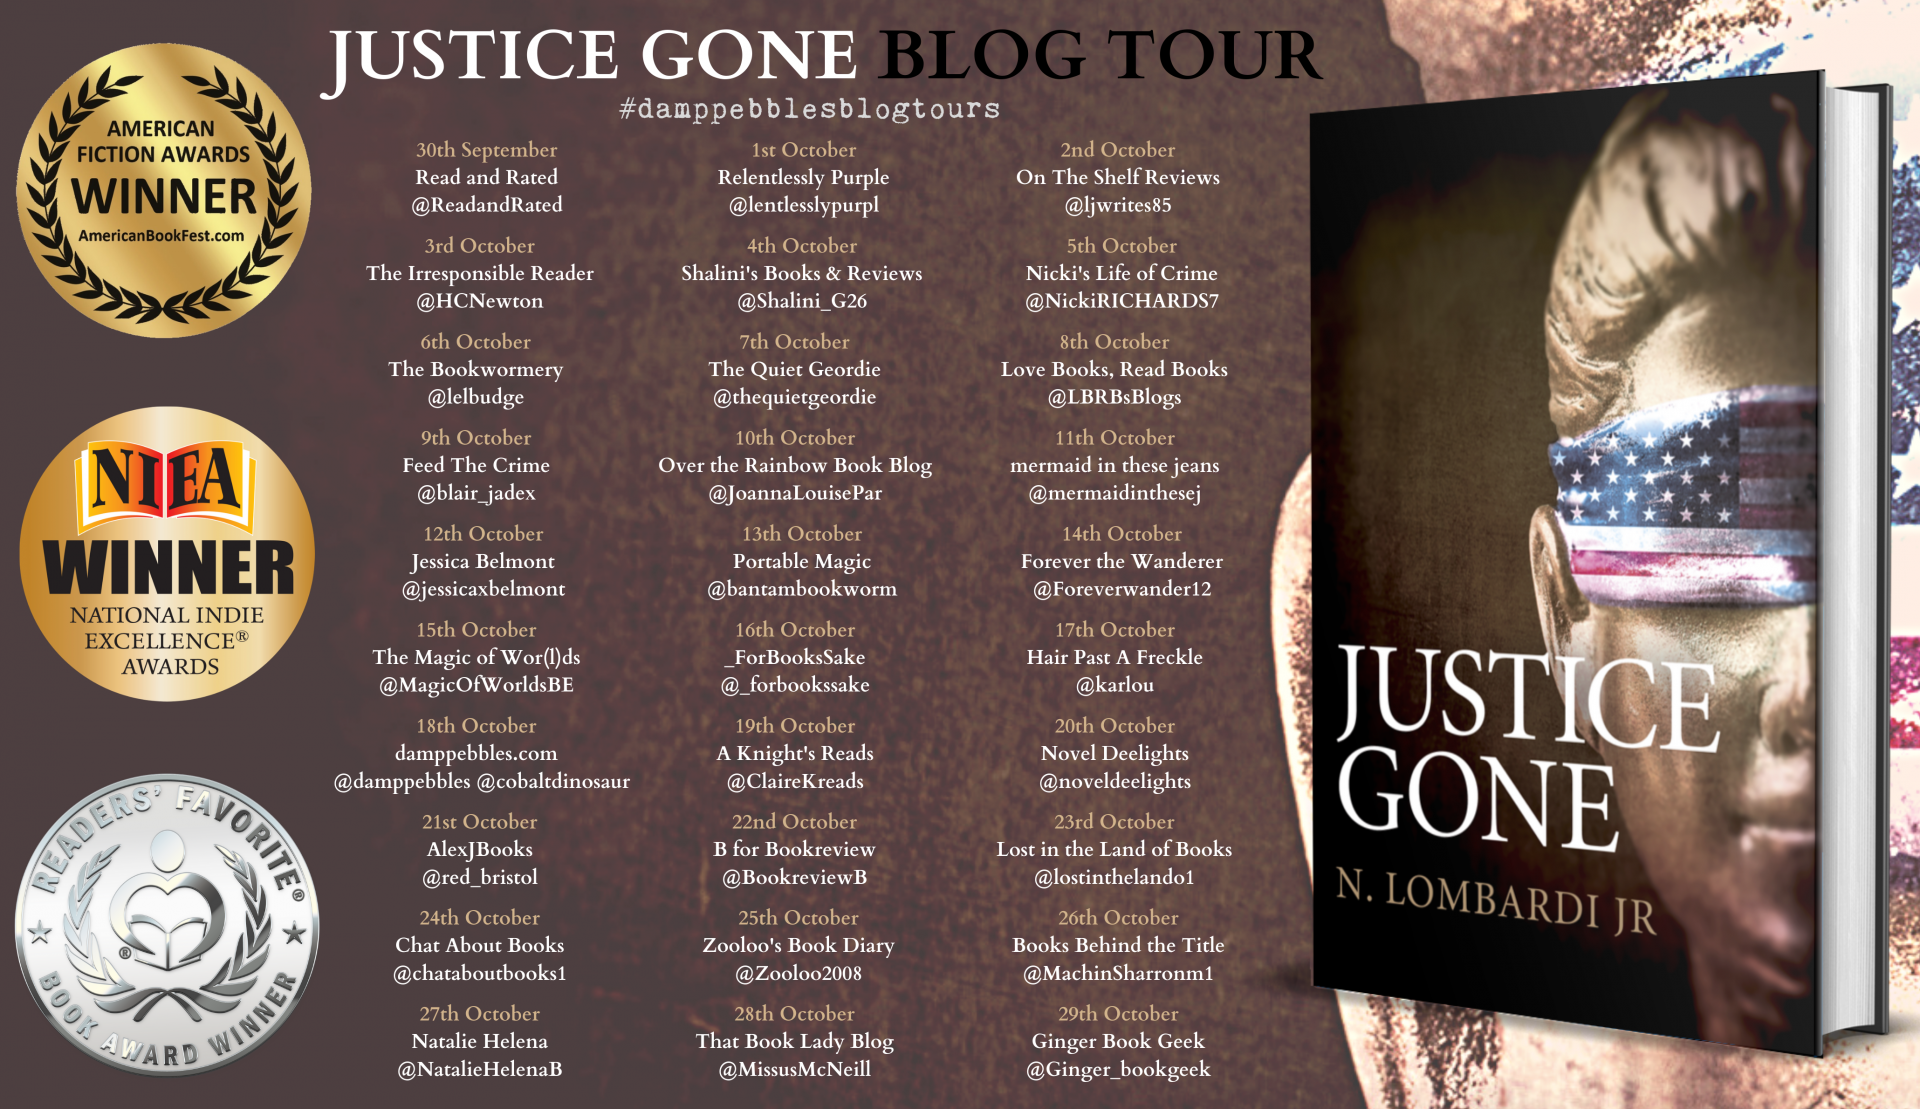 ***#BookReview of Justice Gone by N.Lombardi Jr #JusticeGone #NLombardiJr @damppebbles #damppebblesblogtours